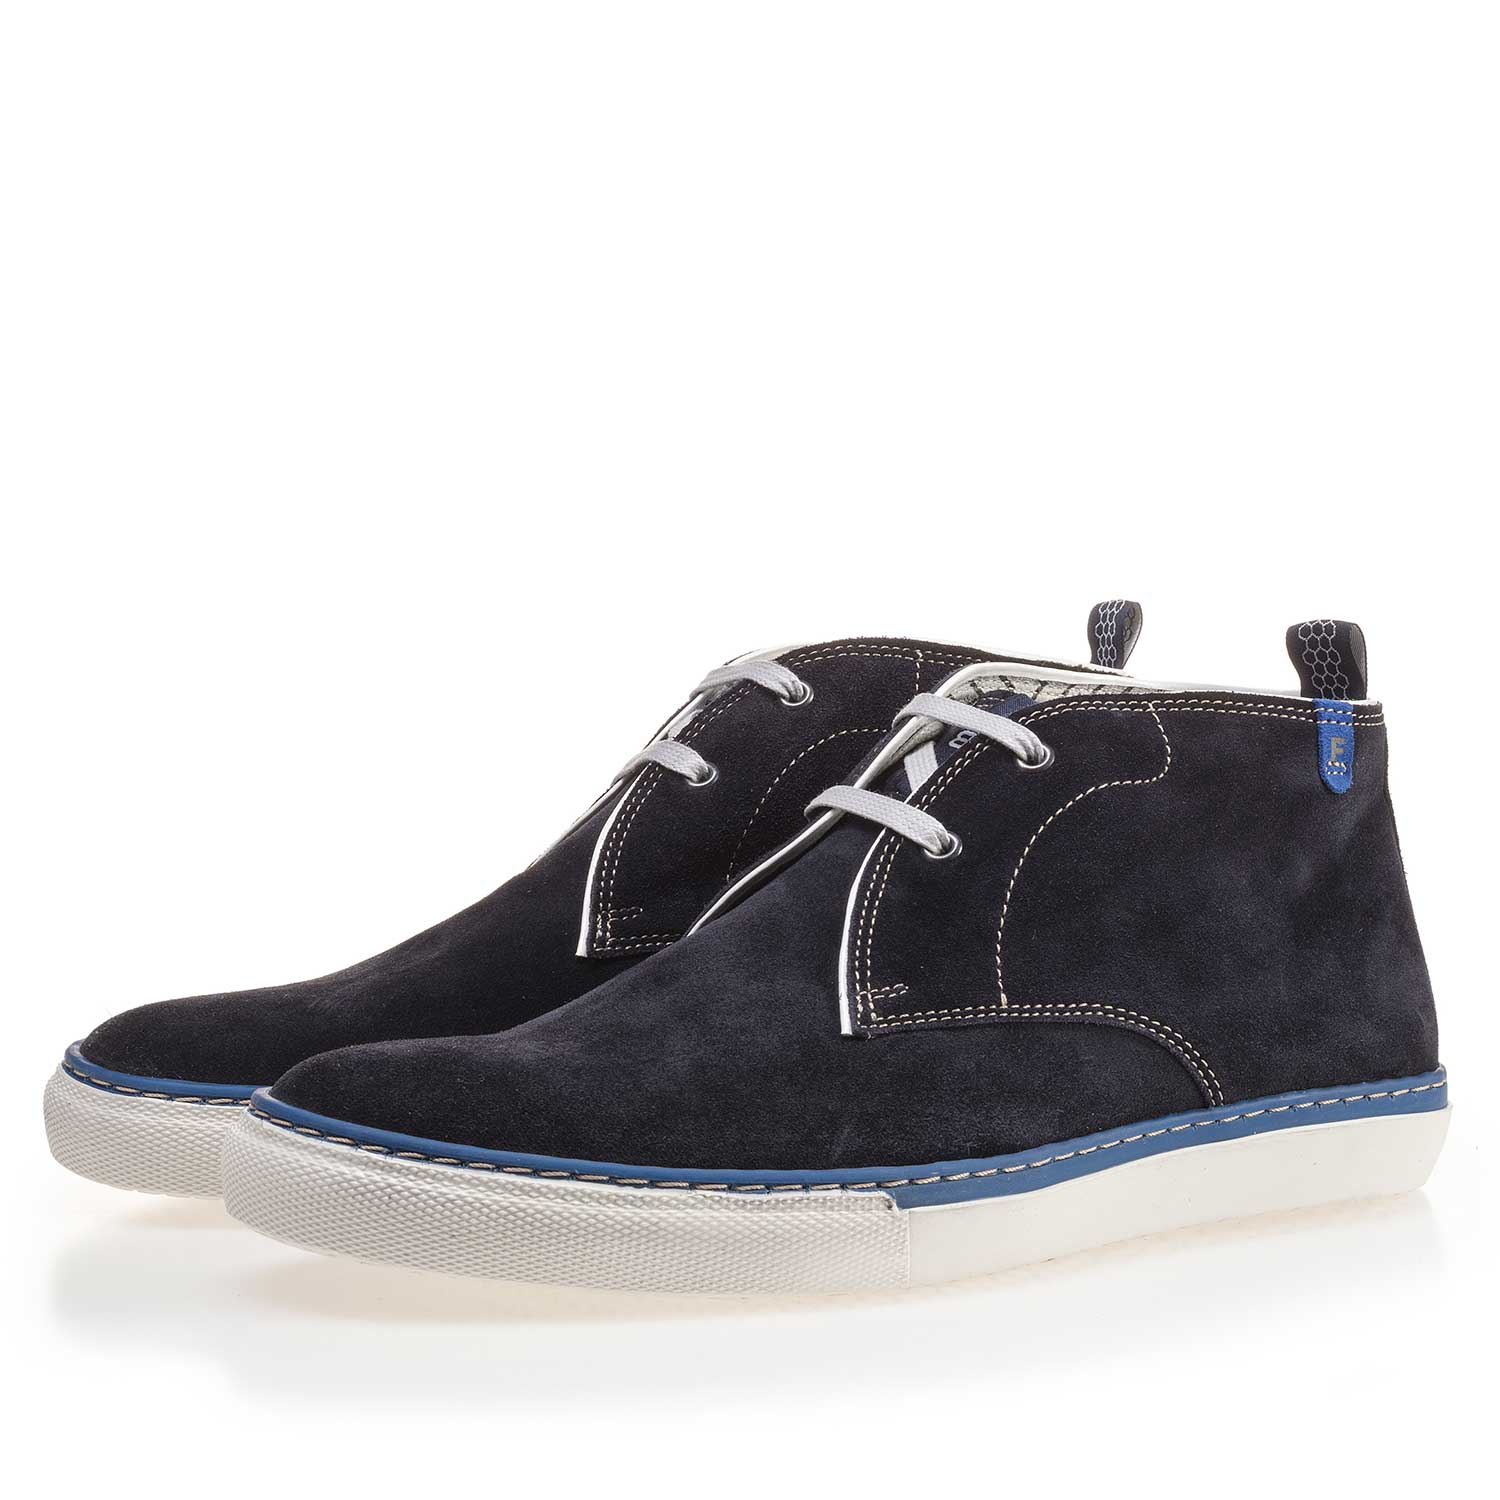 10024/00 - Dark blue suede leather lace boot